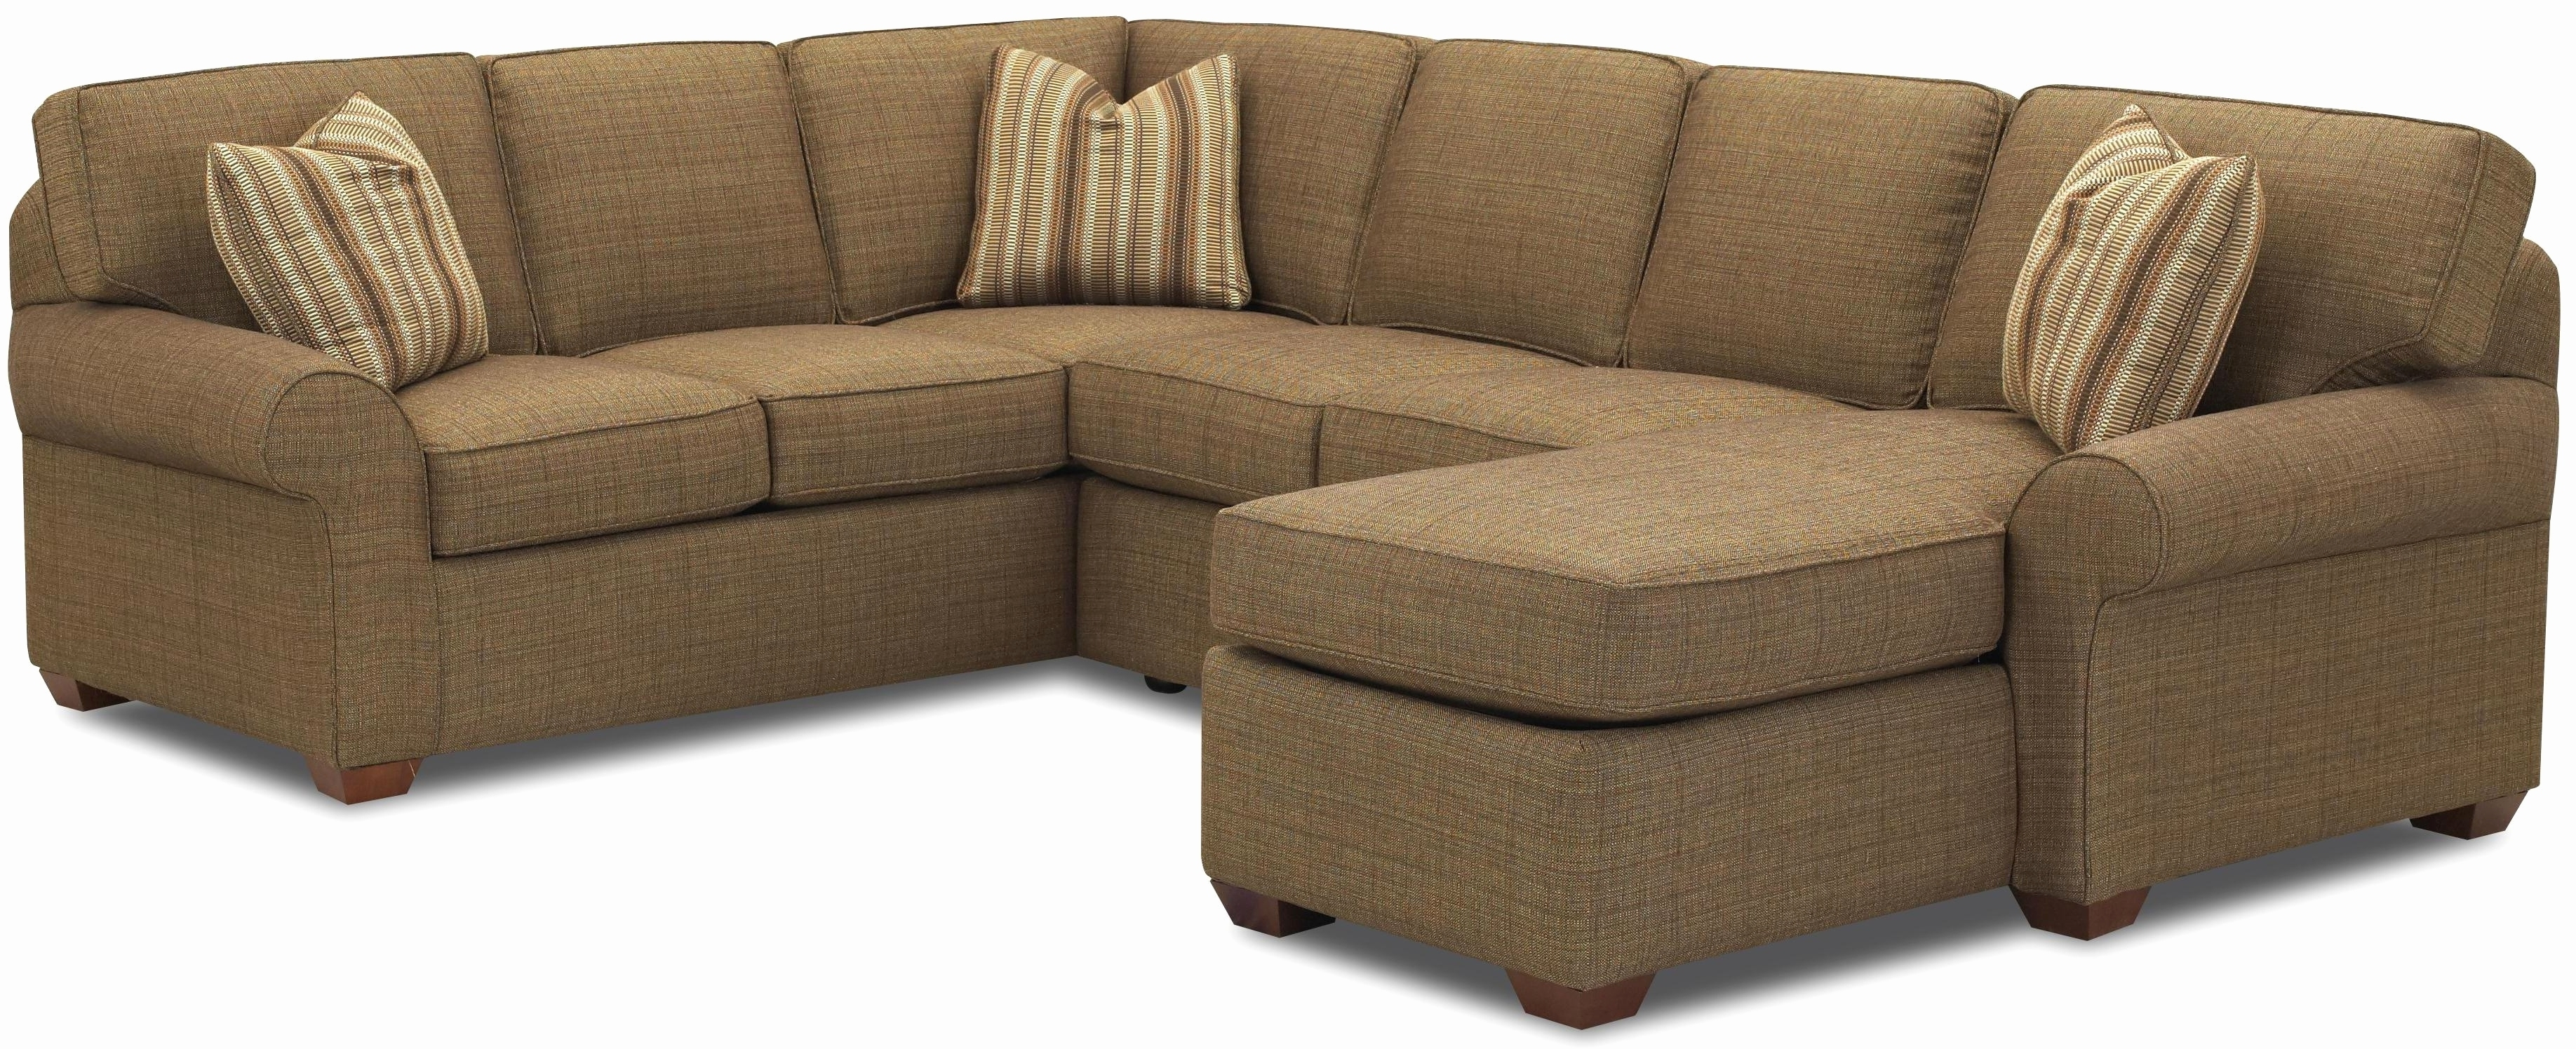 Sectional Sofas At Sears Throughout Current Awesome Sofa Bed Under 300 2018 – Couches And Sofas Ideas (View 16 of 20)